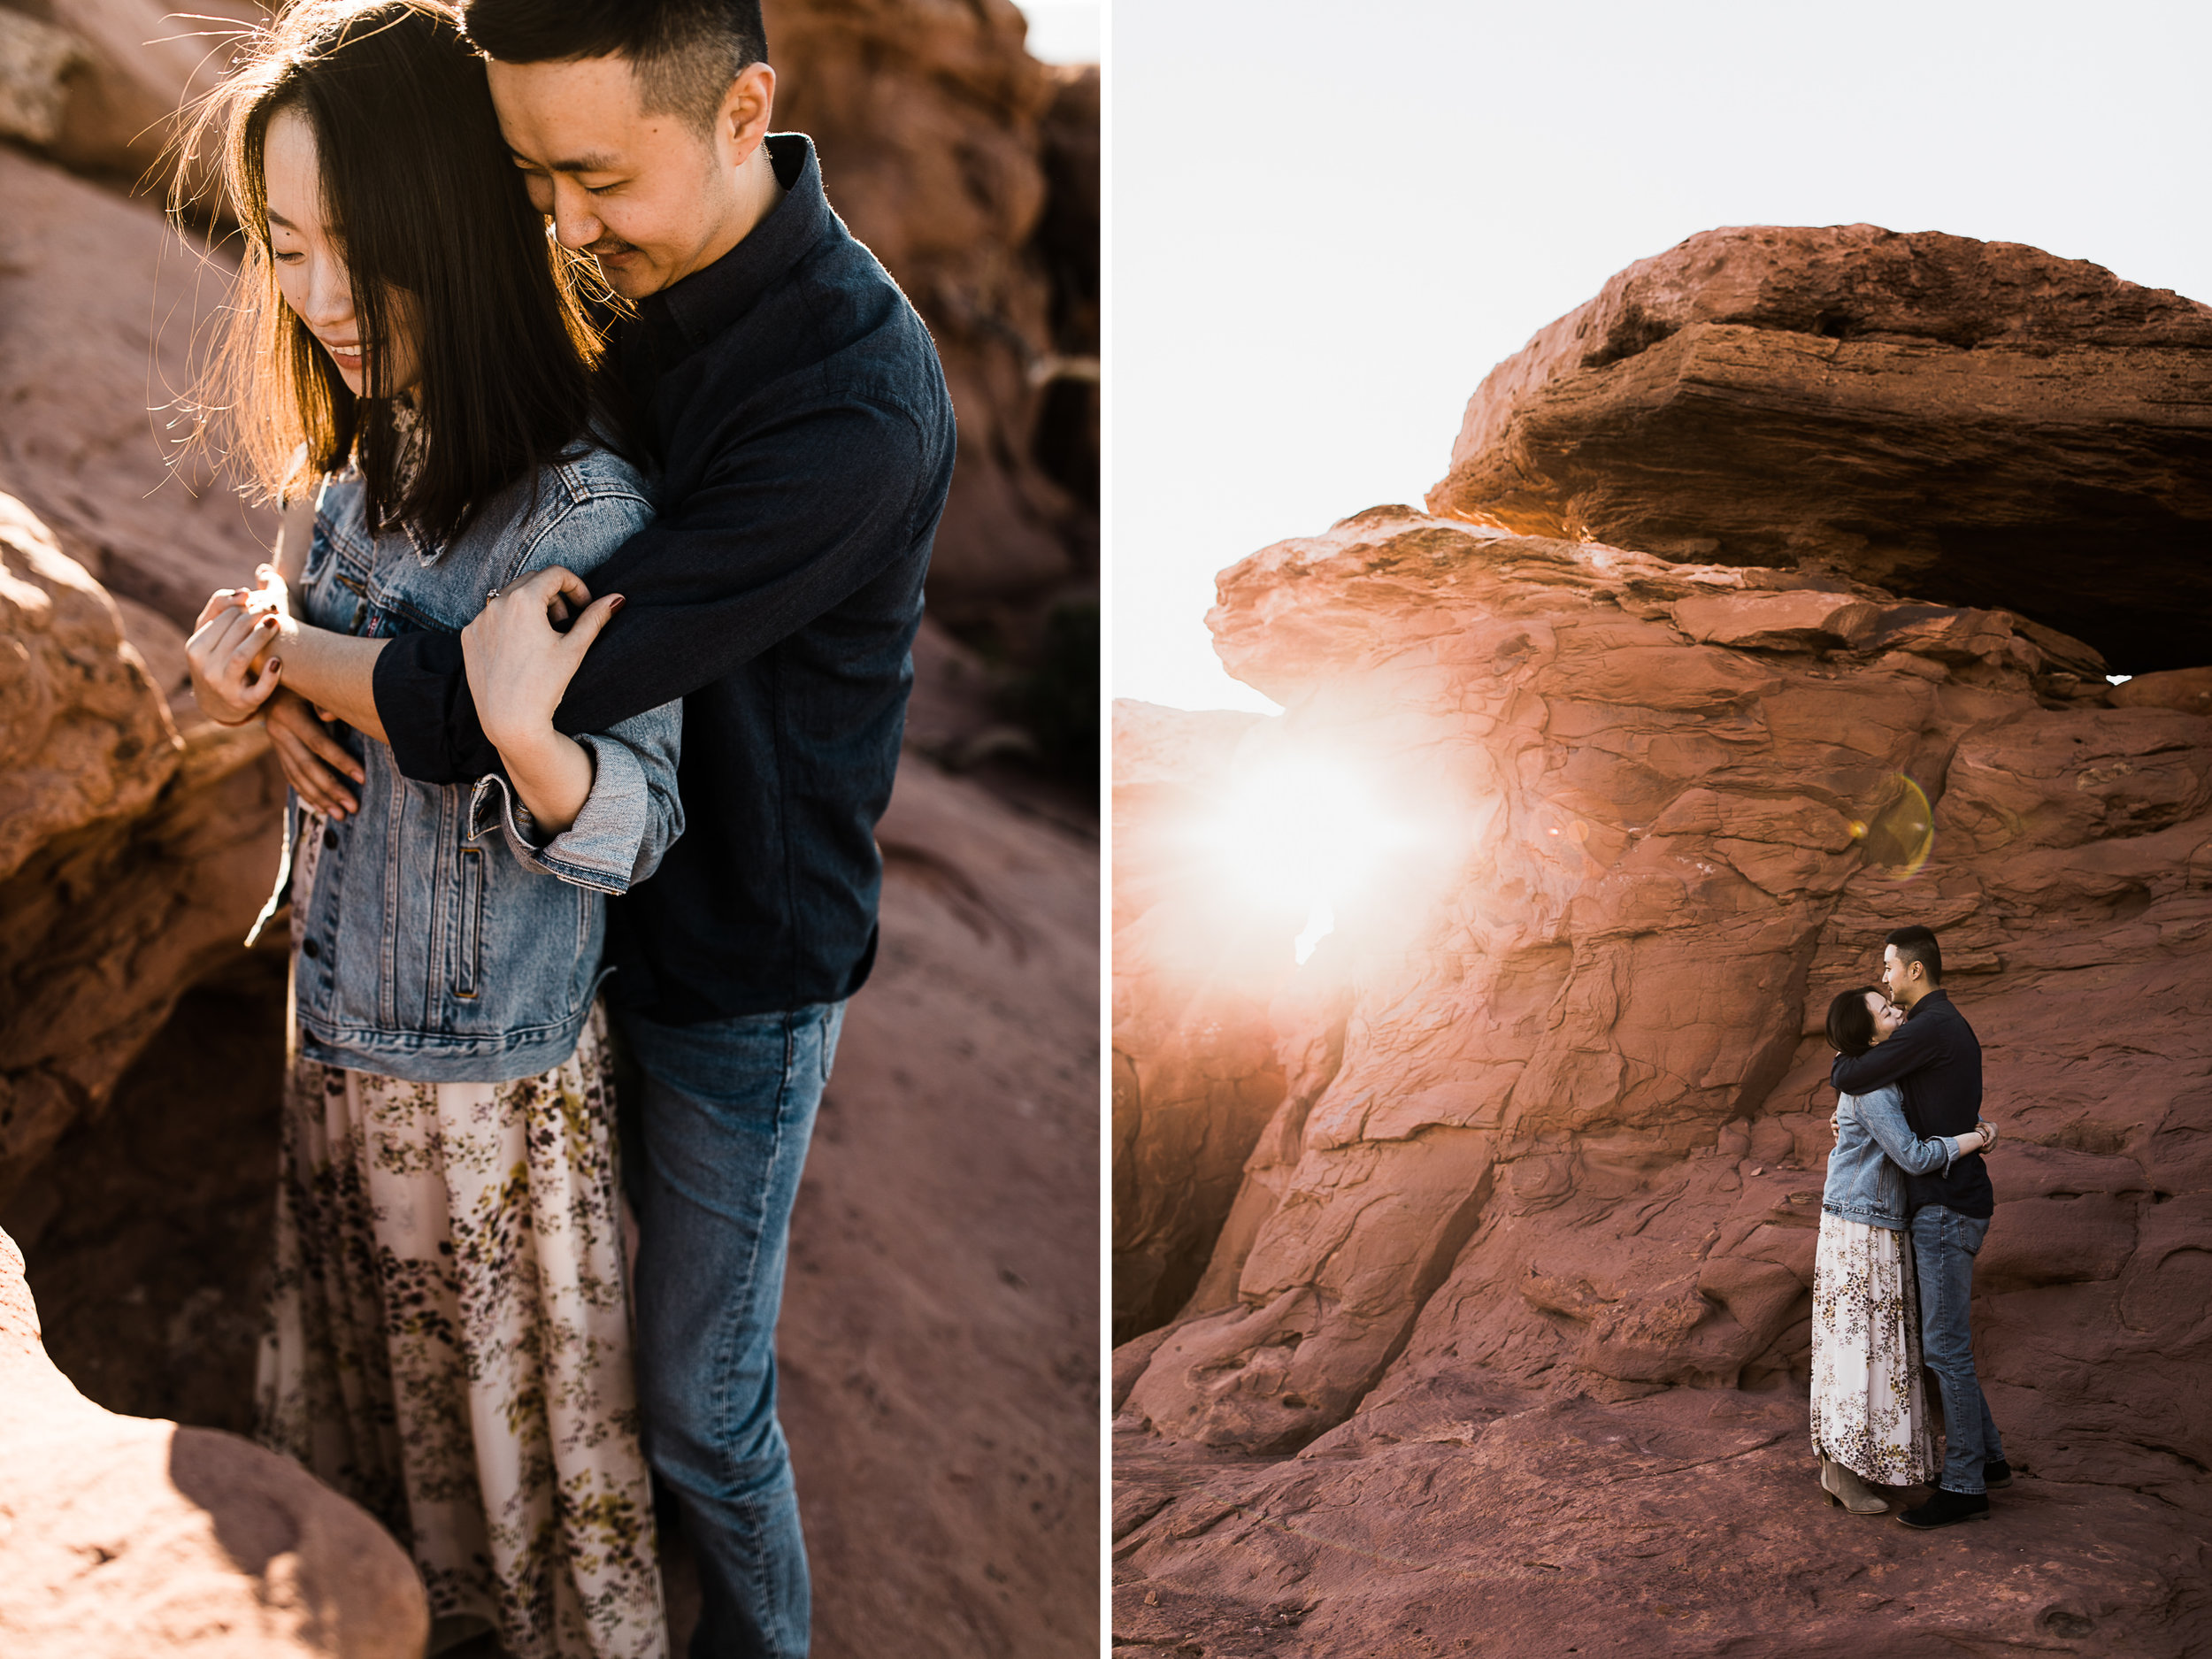 julie + ray's adventurous desert engagement session | canyonlands national park | utah adventure elopement photographer | the hearnes adventure photography | www.thehearnes.com